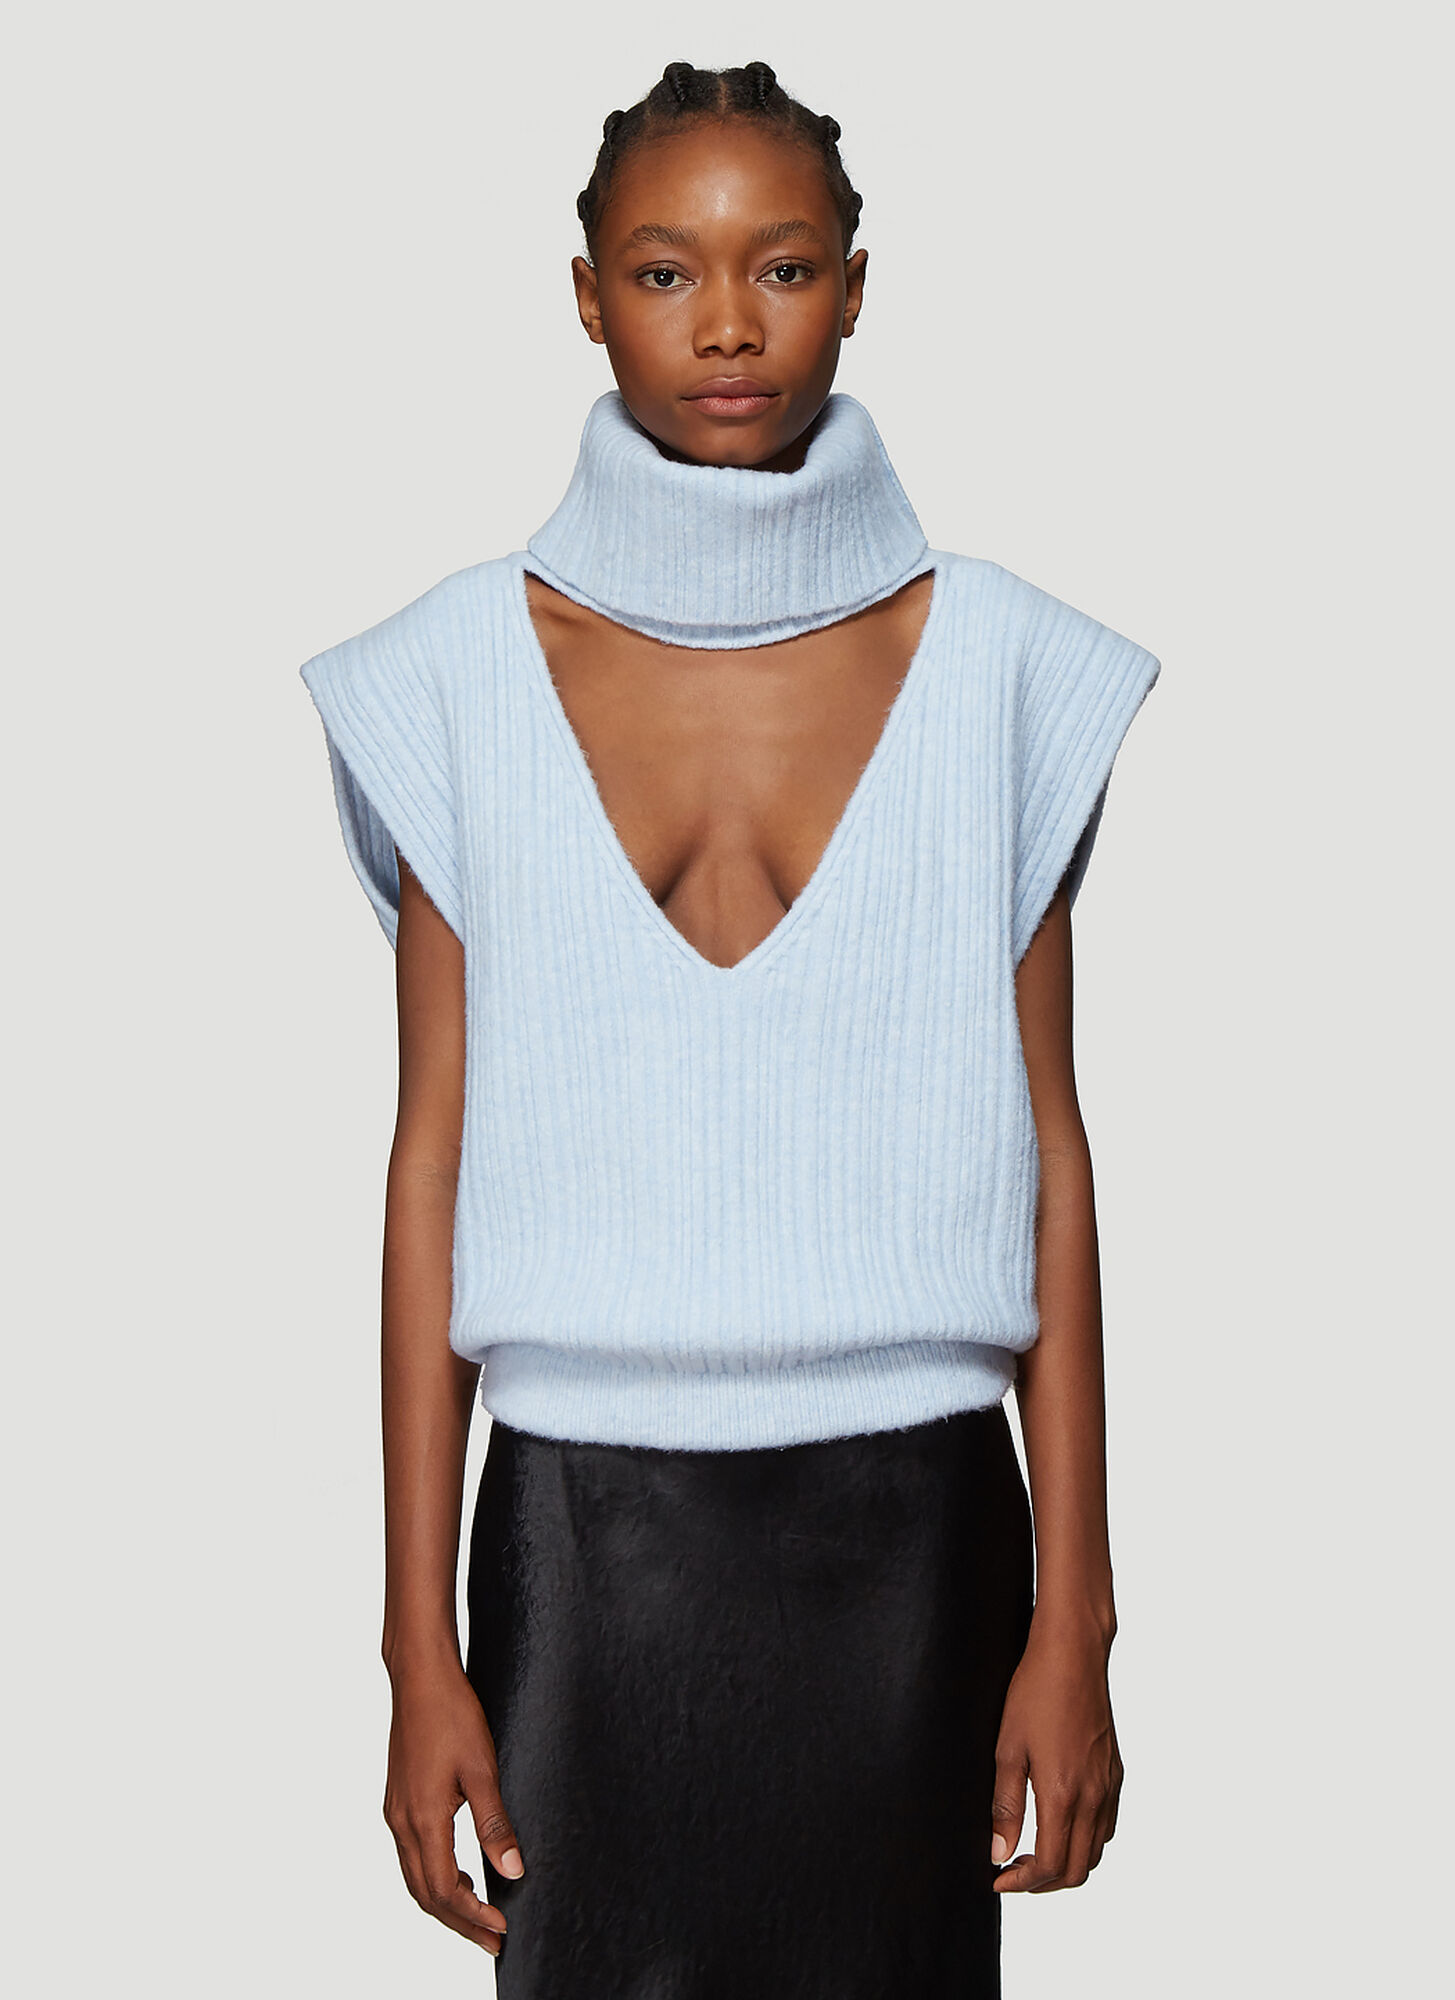 Jacquemus La Maille Aube Cropped Turtleneck Sweater in Blue